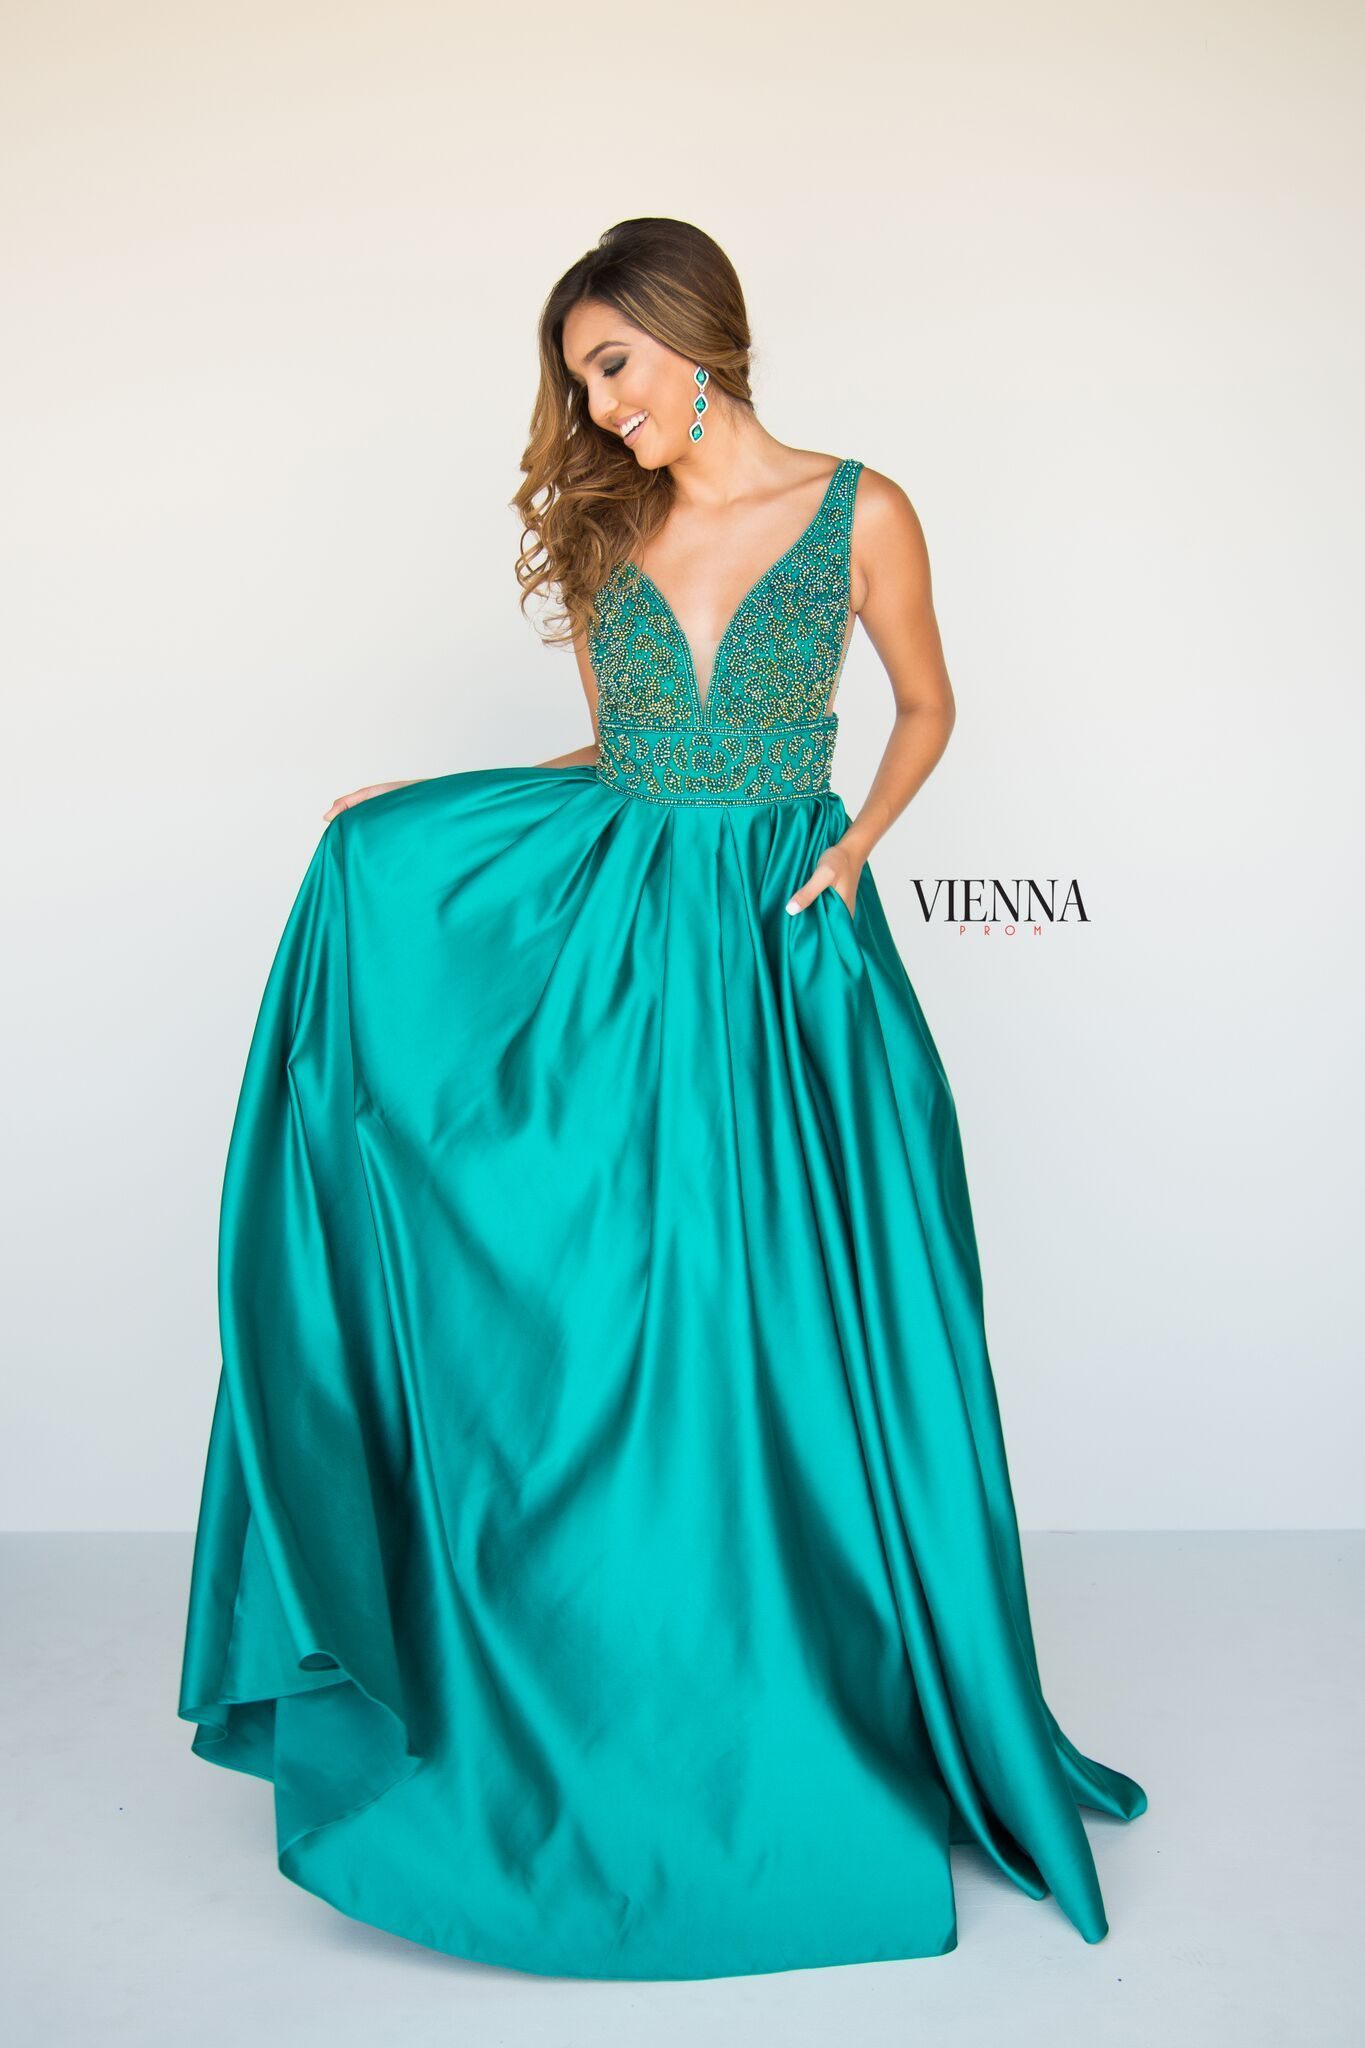 Vienna Prom 7802 Sds Couture Accessories Homecoming Dresses Formal Dresses Long Prom Dresses [ 2048 x 1365 Pixel ]